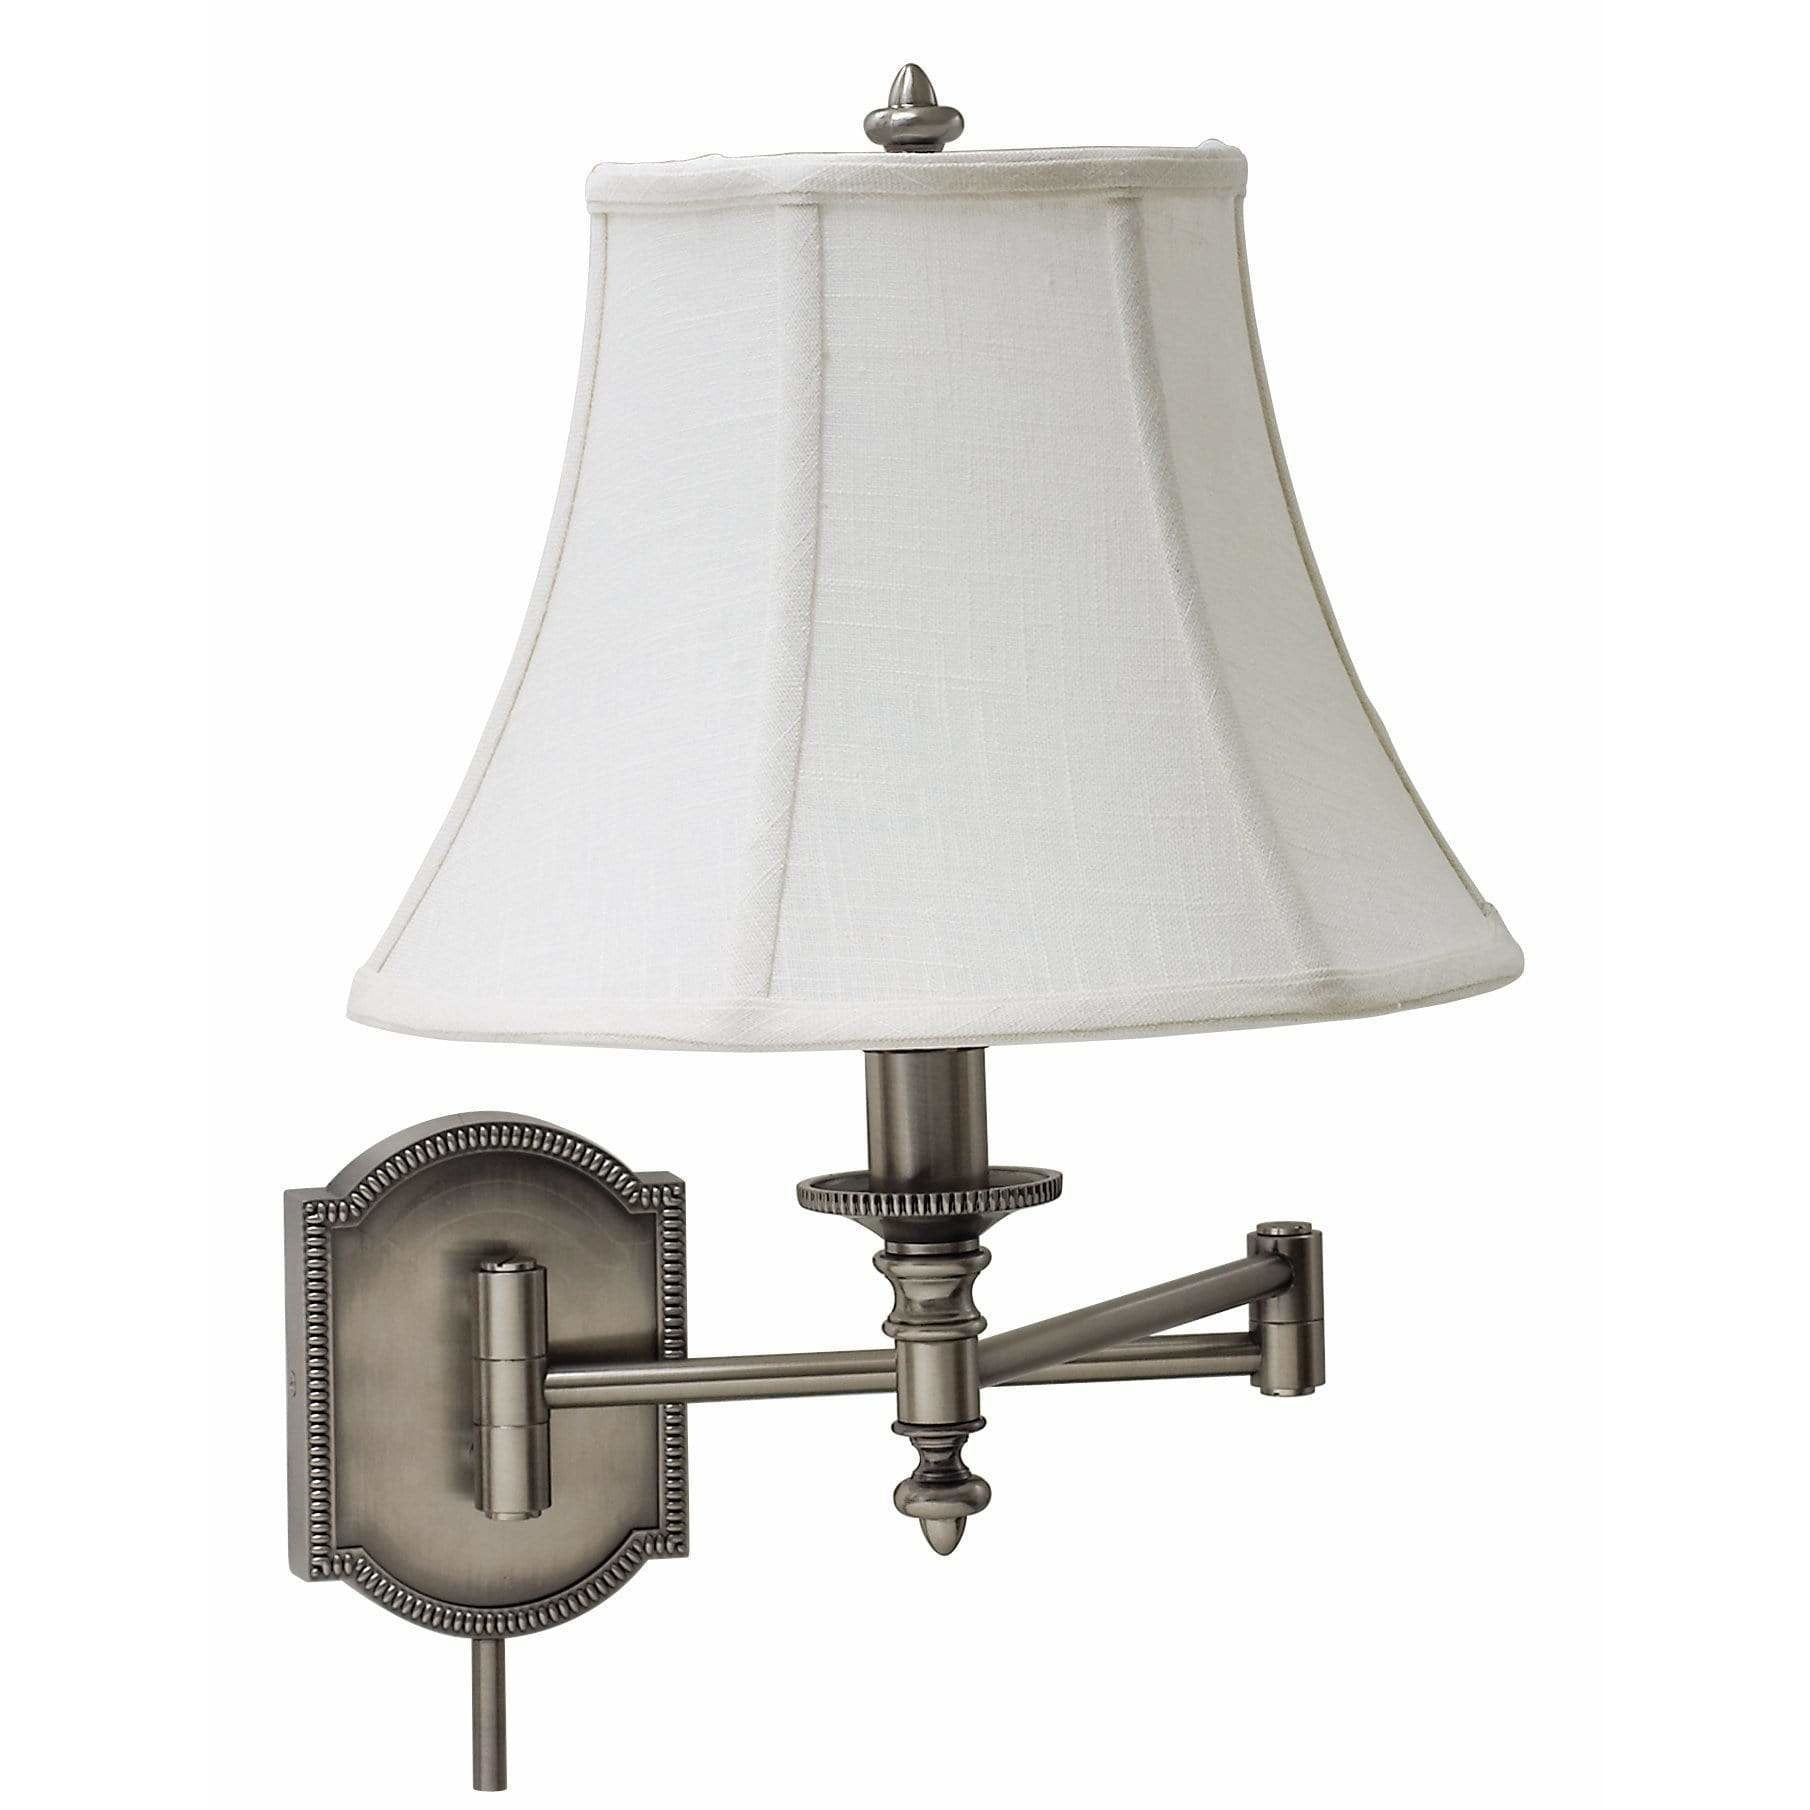 House Of Troy Wall Lamps Swing Arm Wall Lamp by House Of Troy WS761-AS